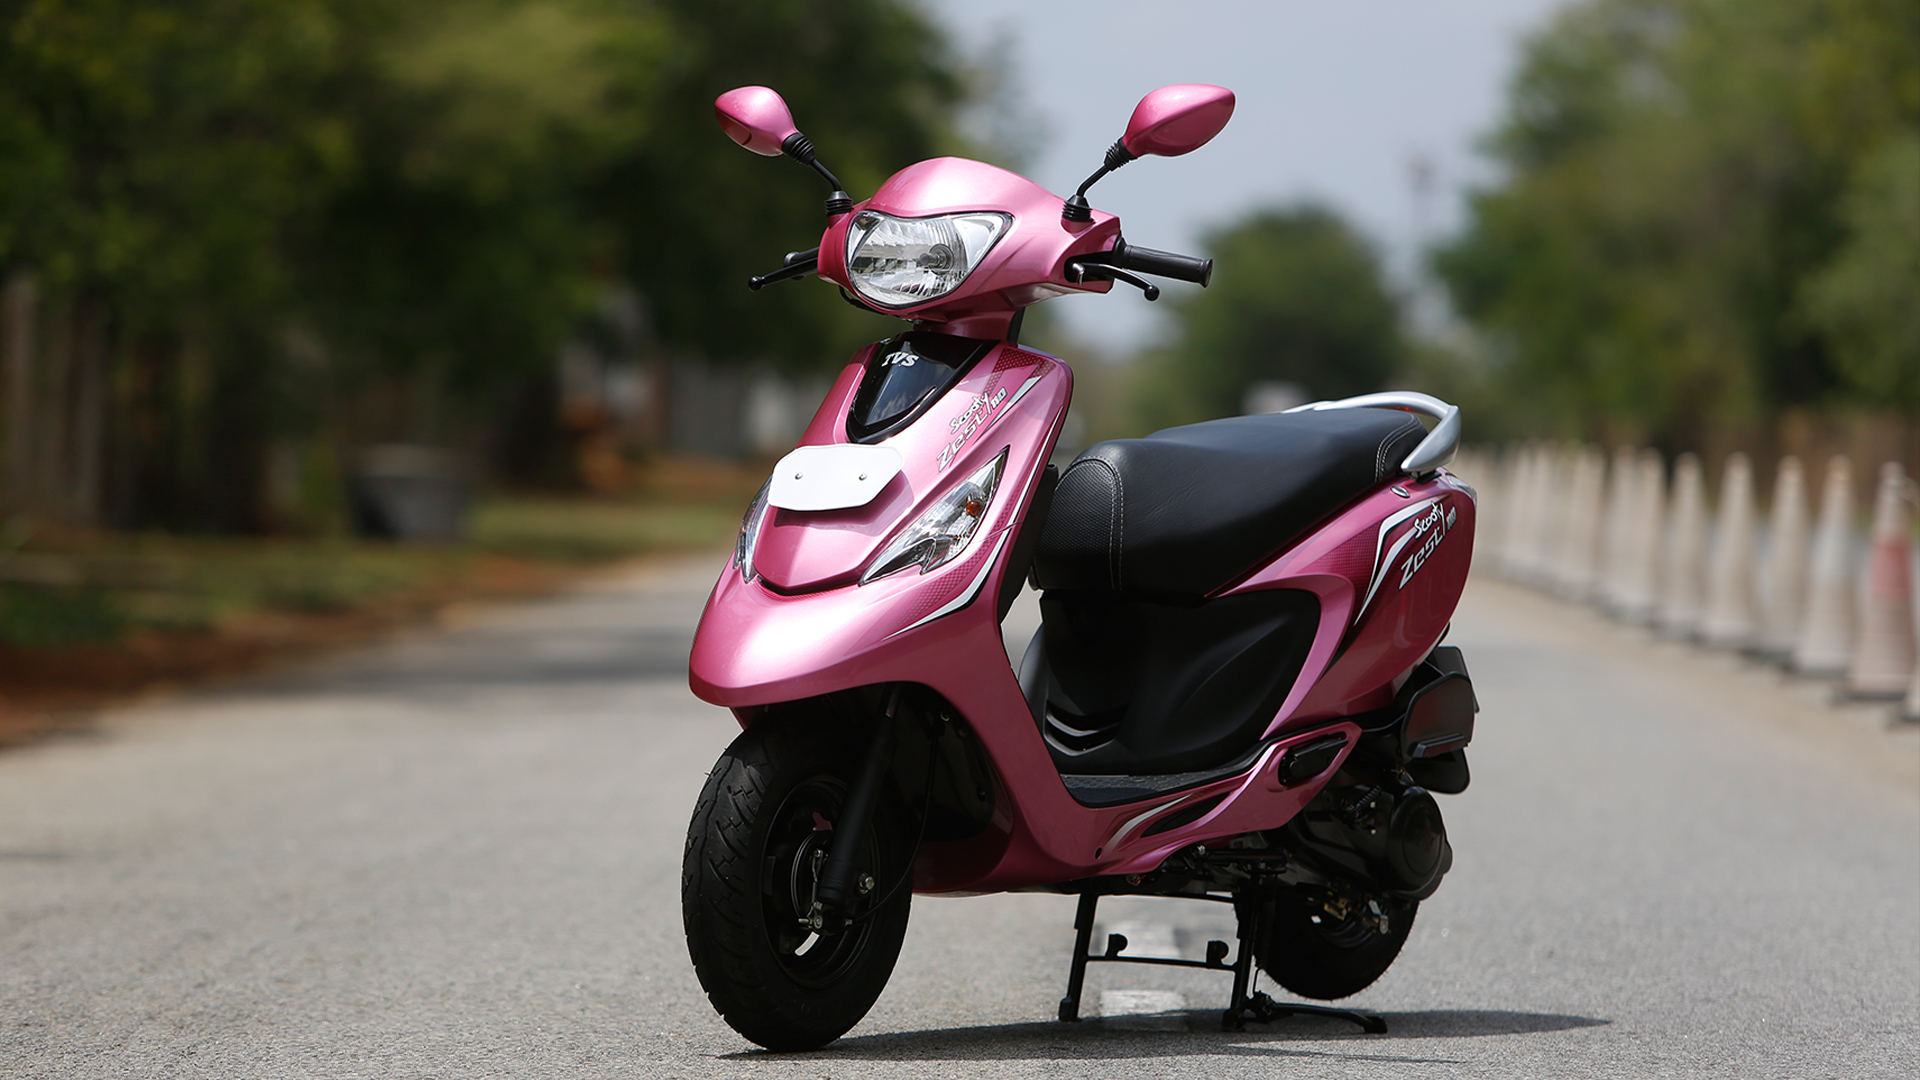 TVS Scooty Zest 110 2014 Price Mileage Reviews Specification